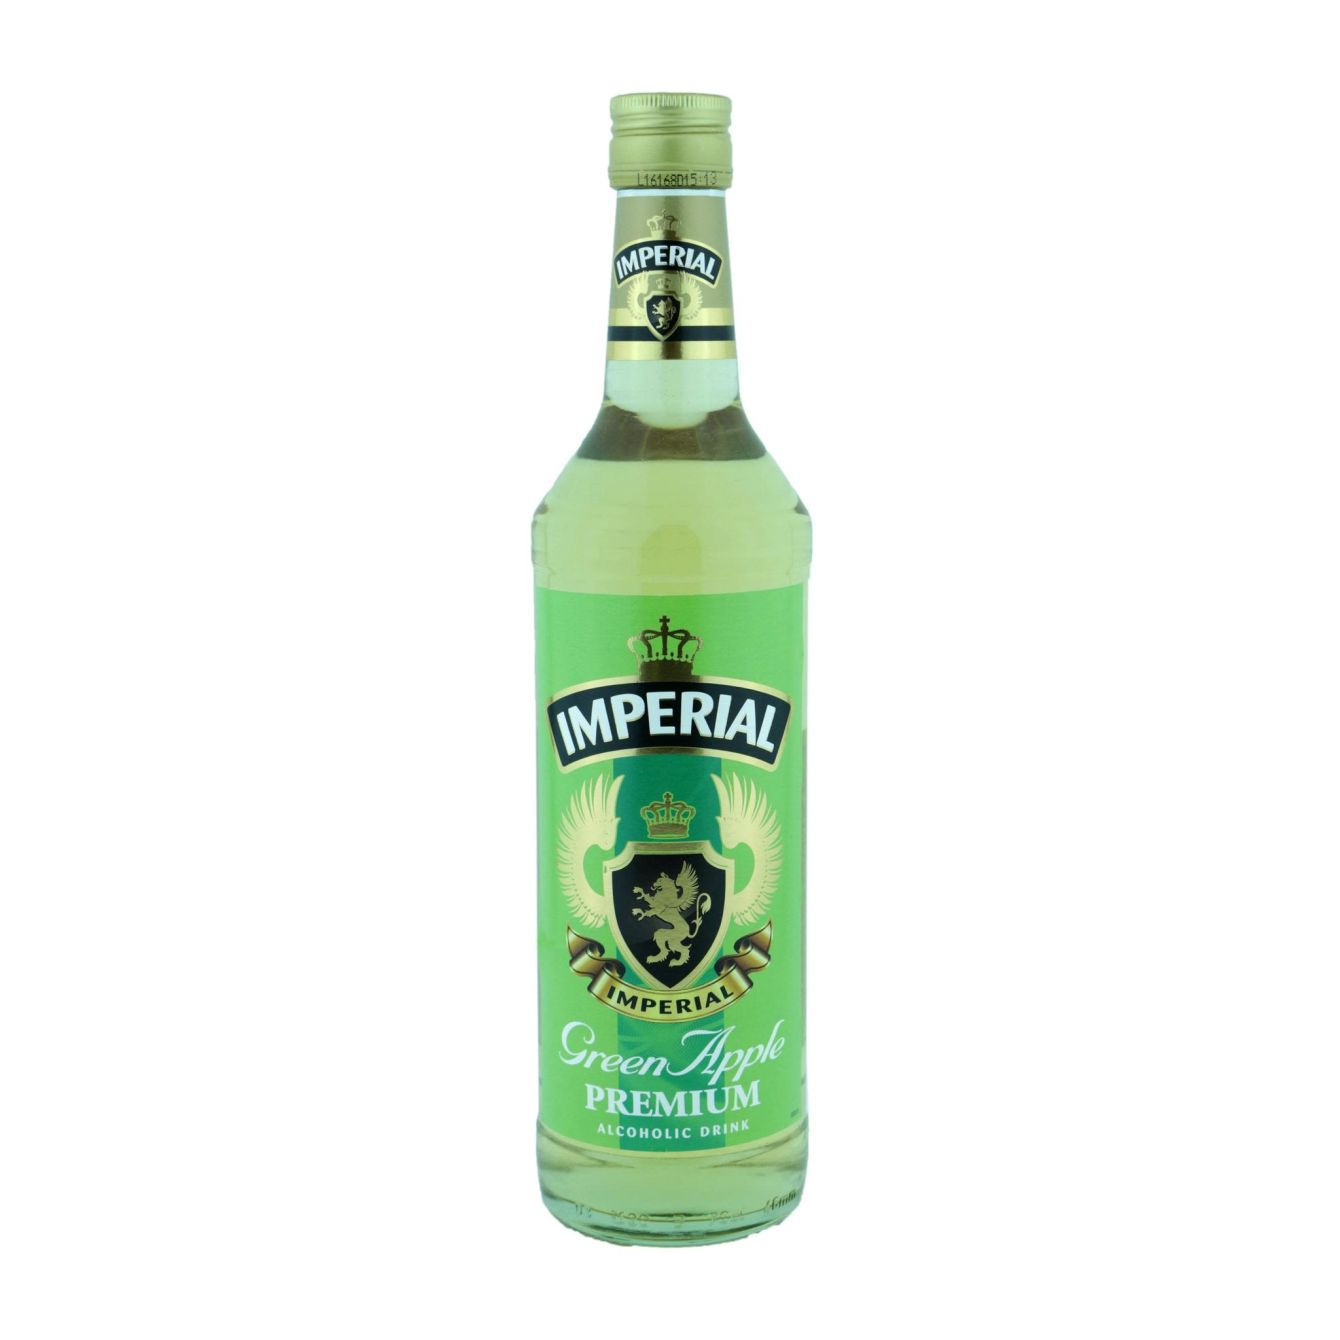 Imperial Green Apple